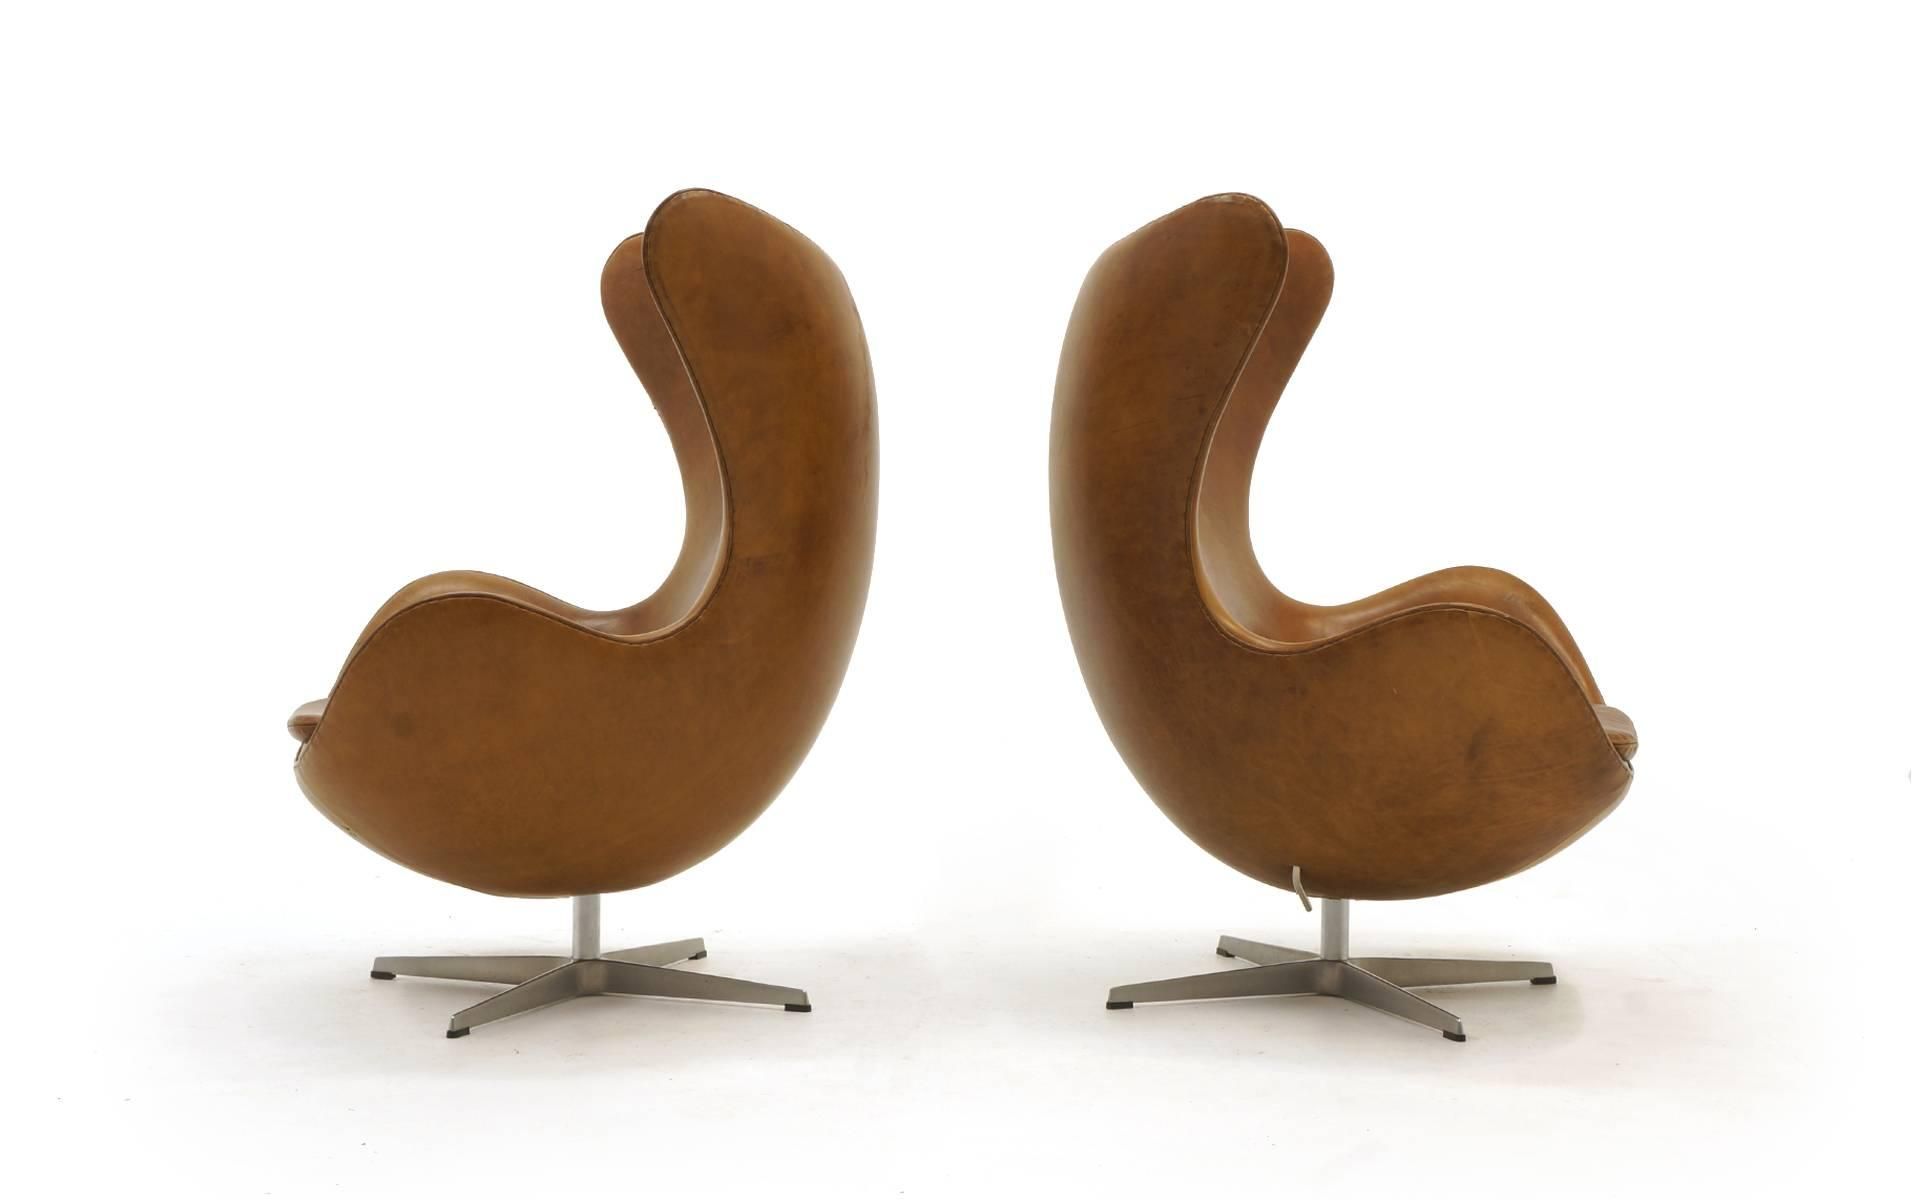 Scandinavian Modern Pair of Arne Jacobsen Egg Chairs in Cognac / Tan  Leather, Made by